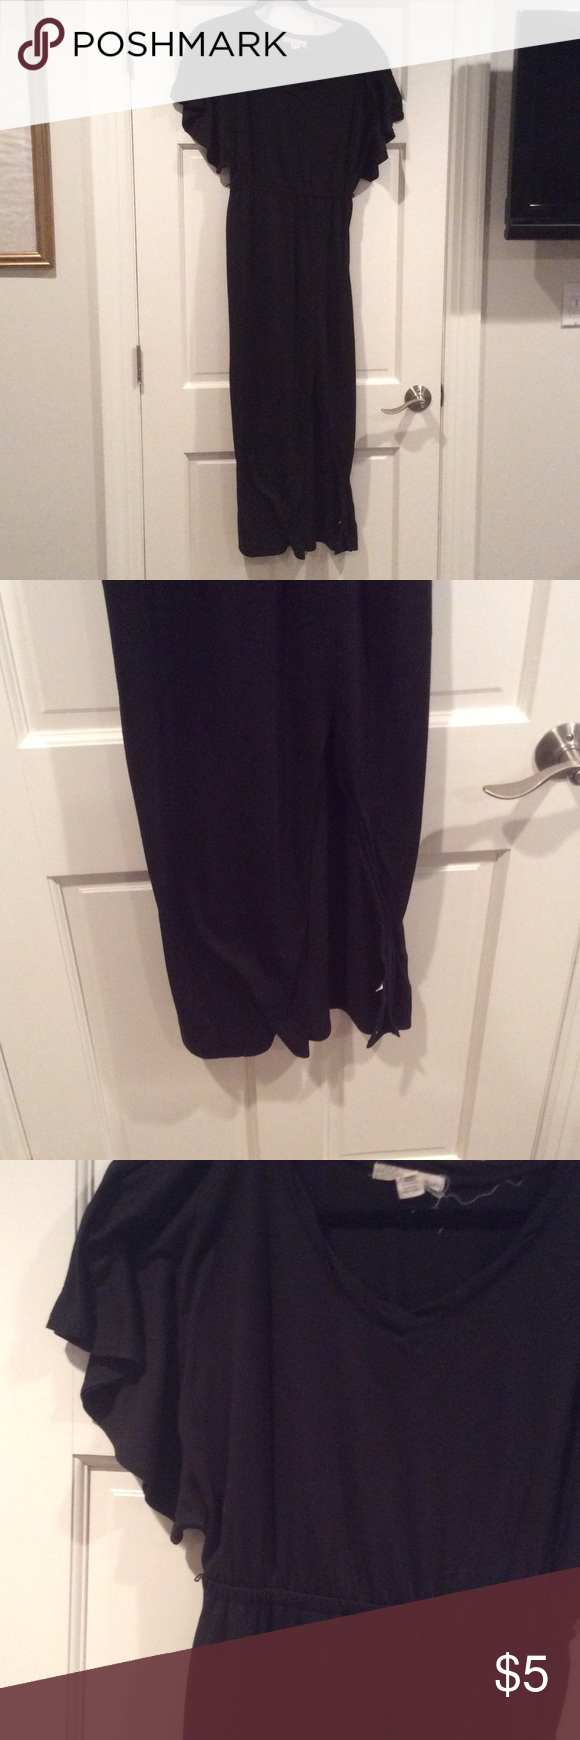 Maxi dress Black maxi dress with flutter sleeves. Slit is shown on the left leg of the dress. In good condition. No stains, rips or tears. Great item to bundle to make the shipping worthwhile! Derek Heart Dresses Maxi